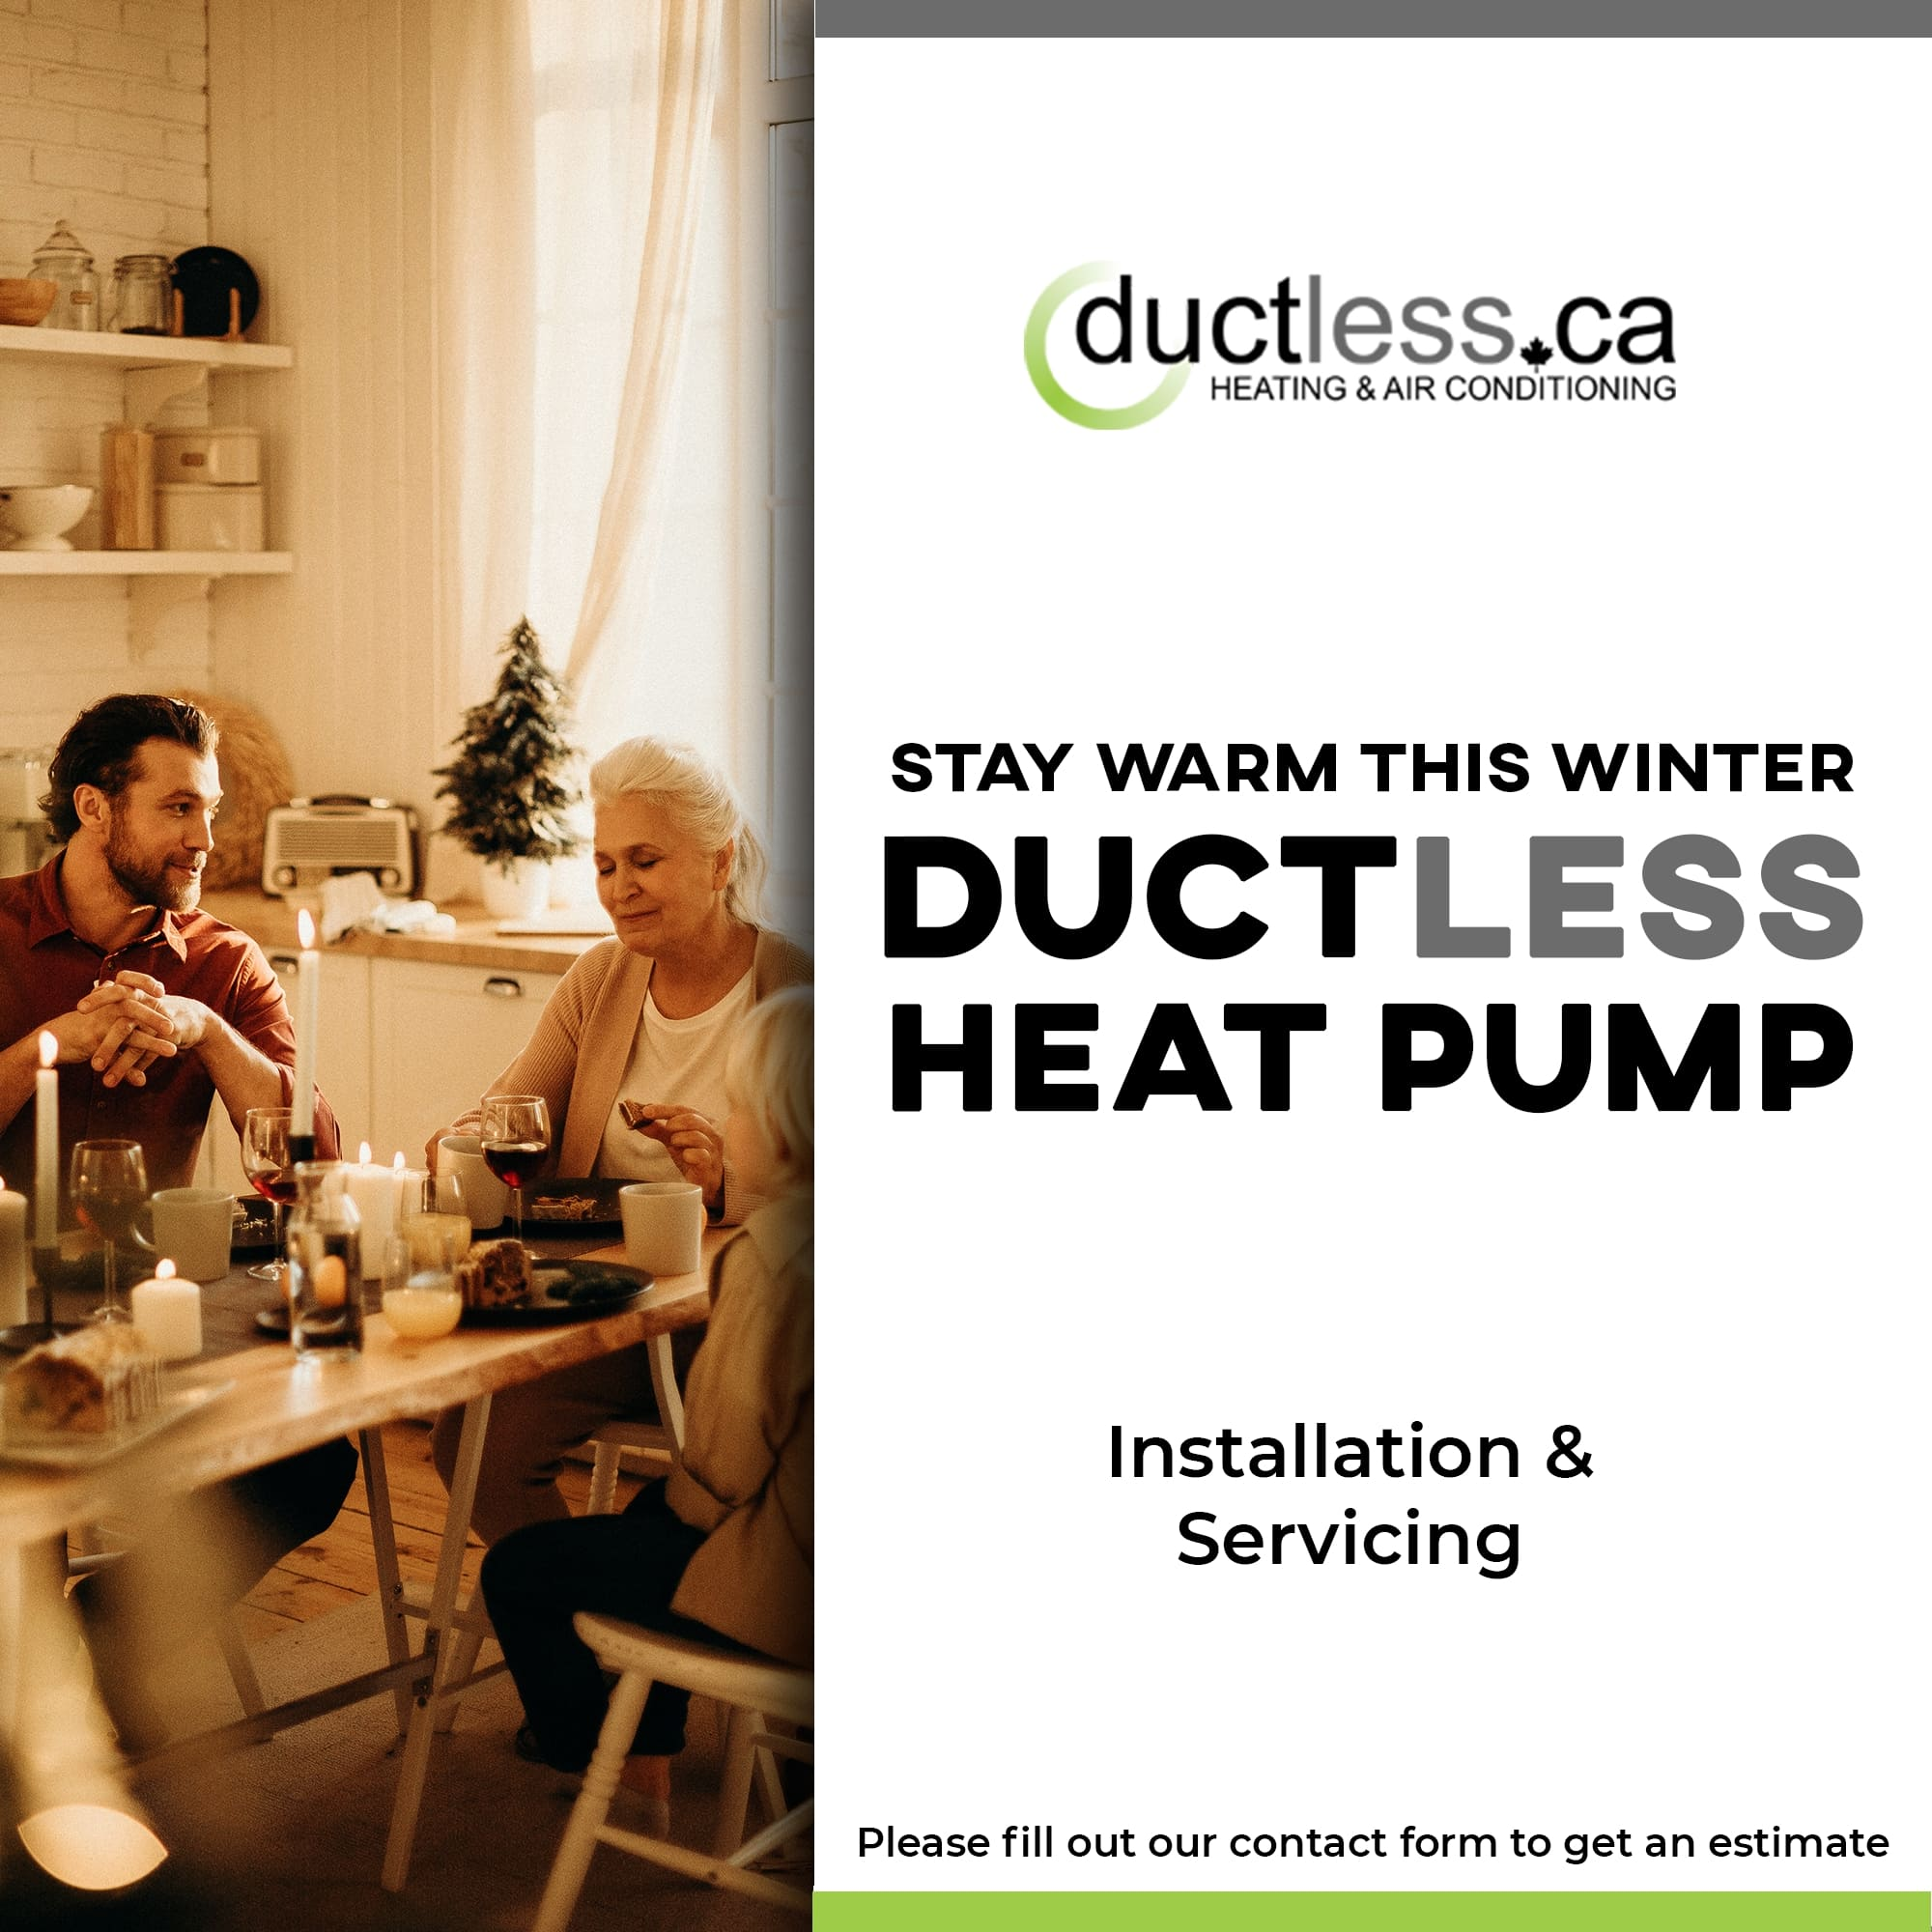 ductless air conditioner Ductless.ca Inc. Toronto HVAC Contractor Ontario